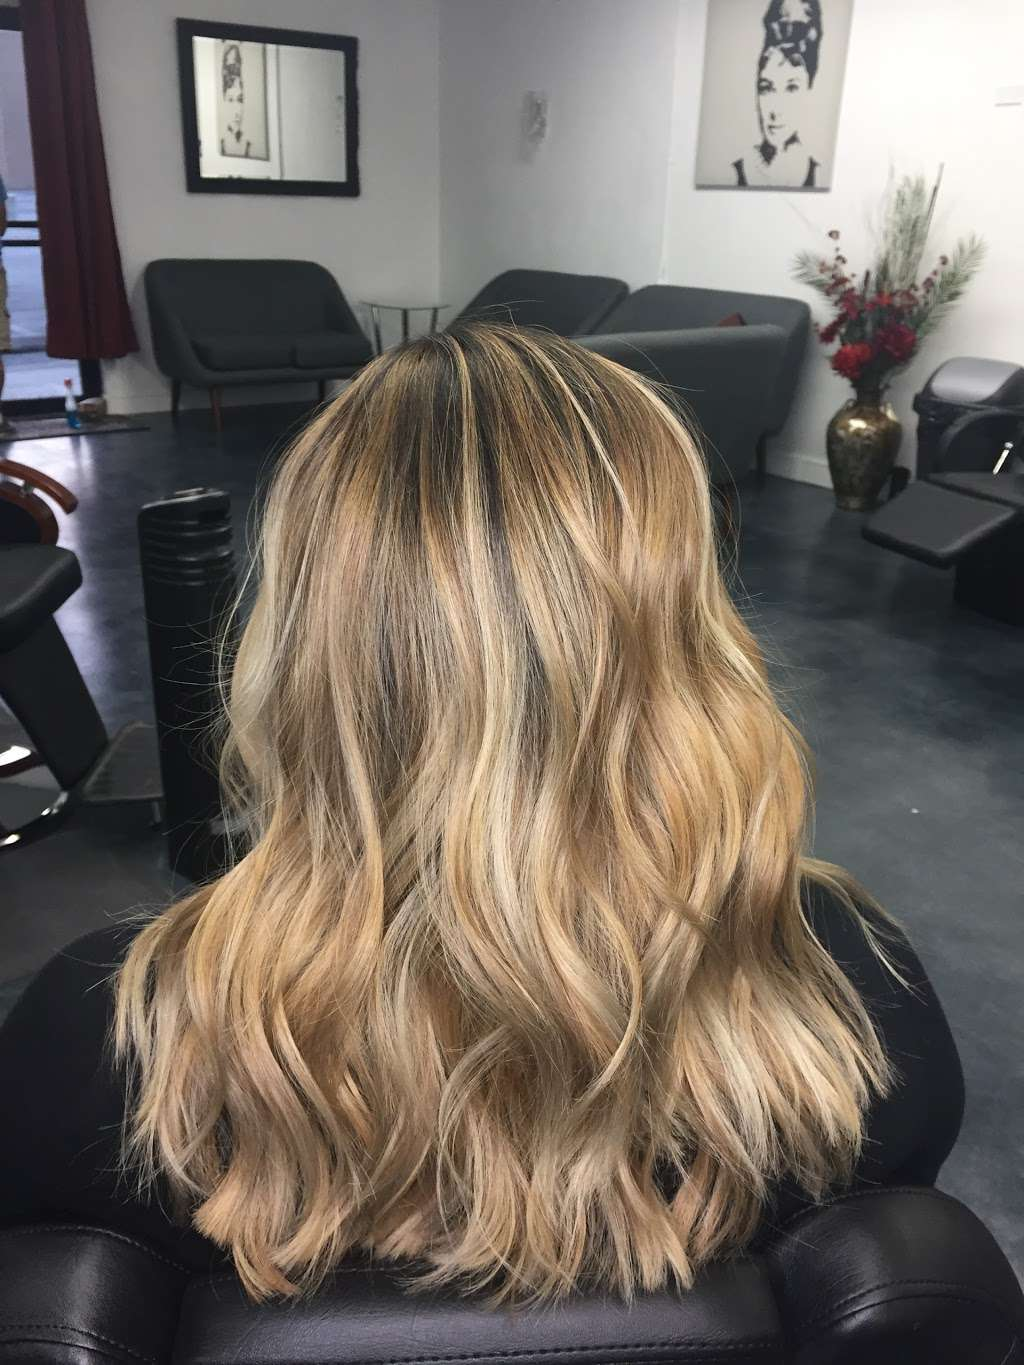 Studio G beauty salon & Barber shop - hair care  | Photo 7 of 10 | Address: 941 N Michillinda Ave, Pasadena, CA 91107, USA | Phone: (626) 510-6366